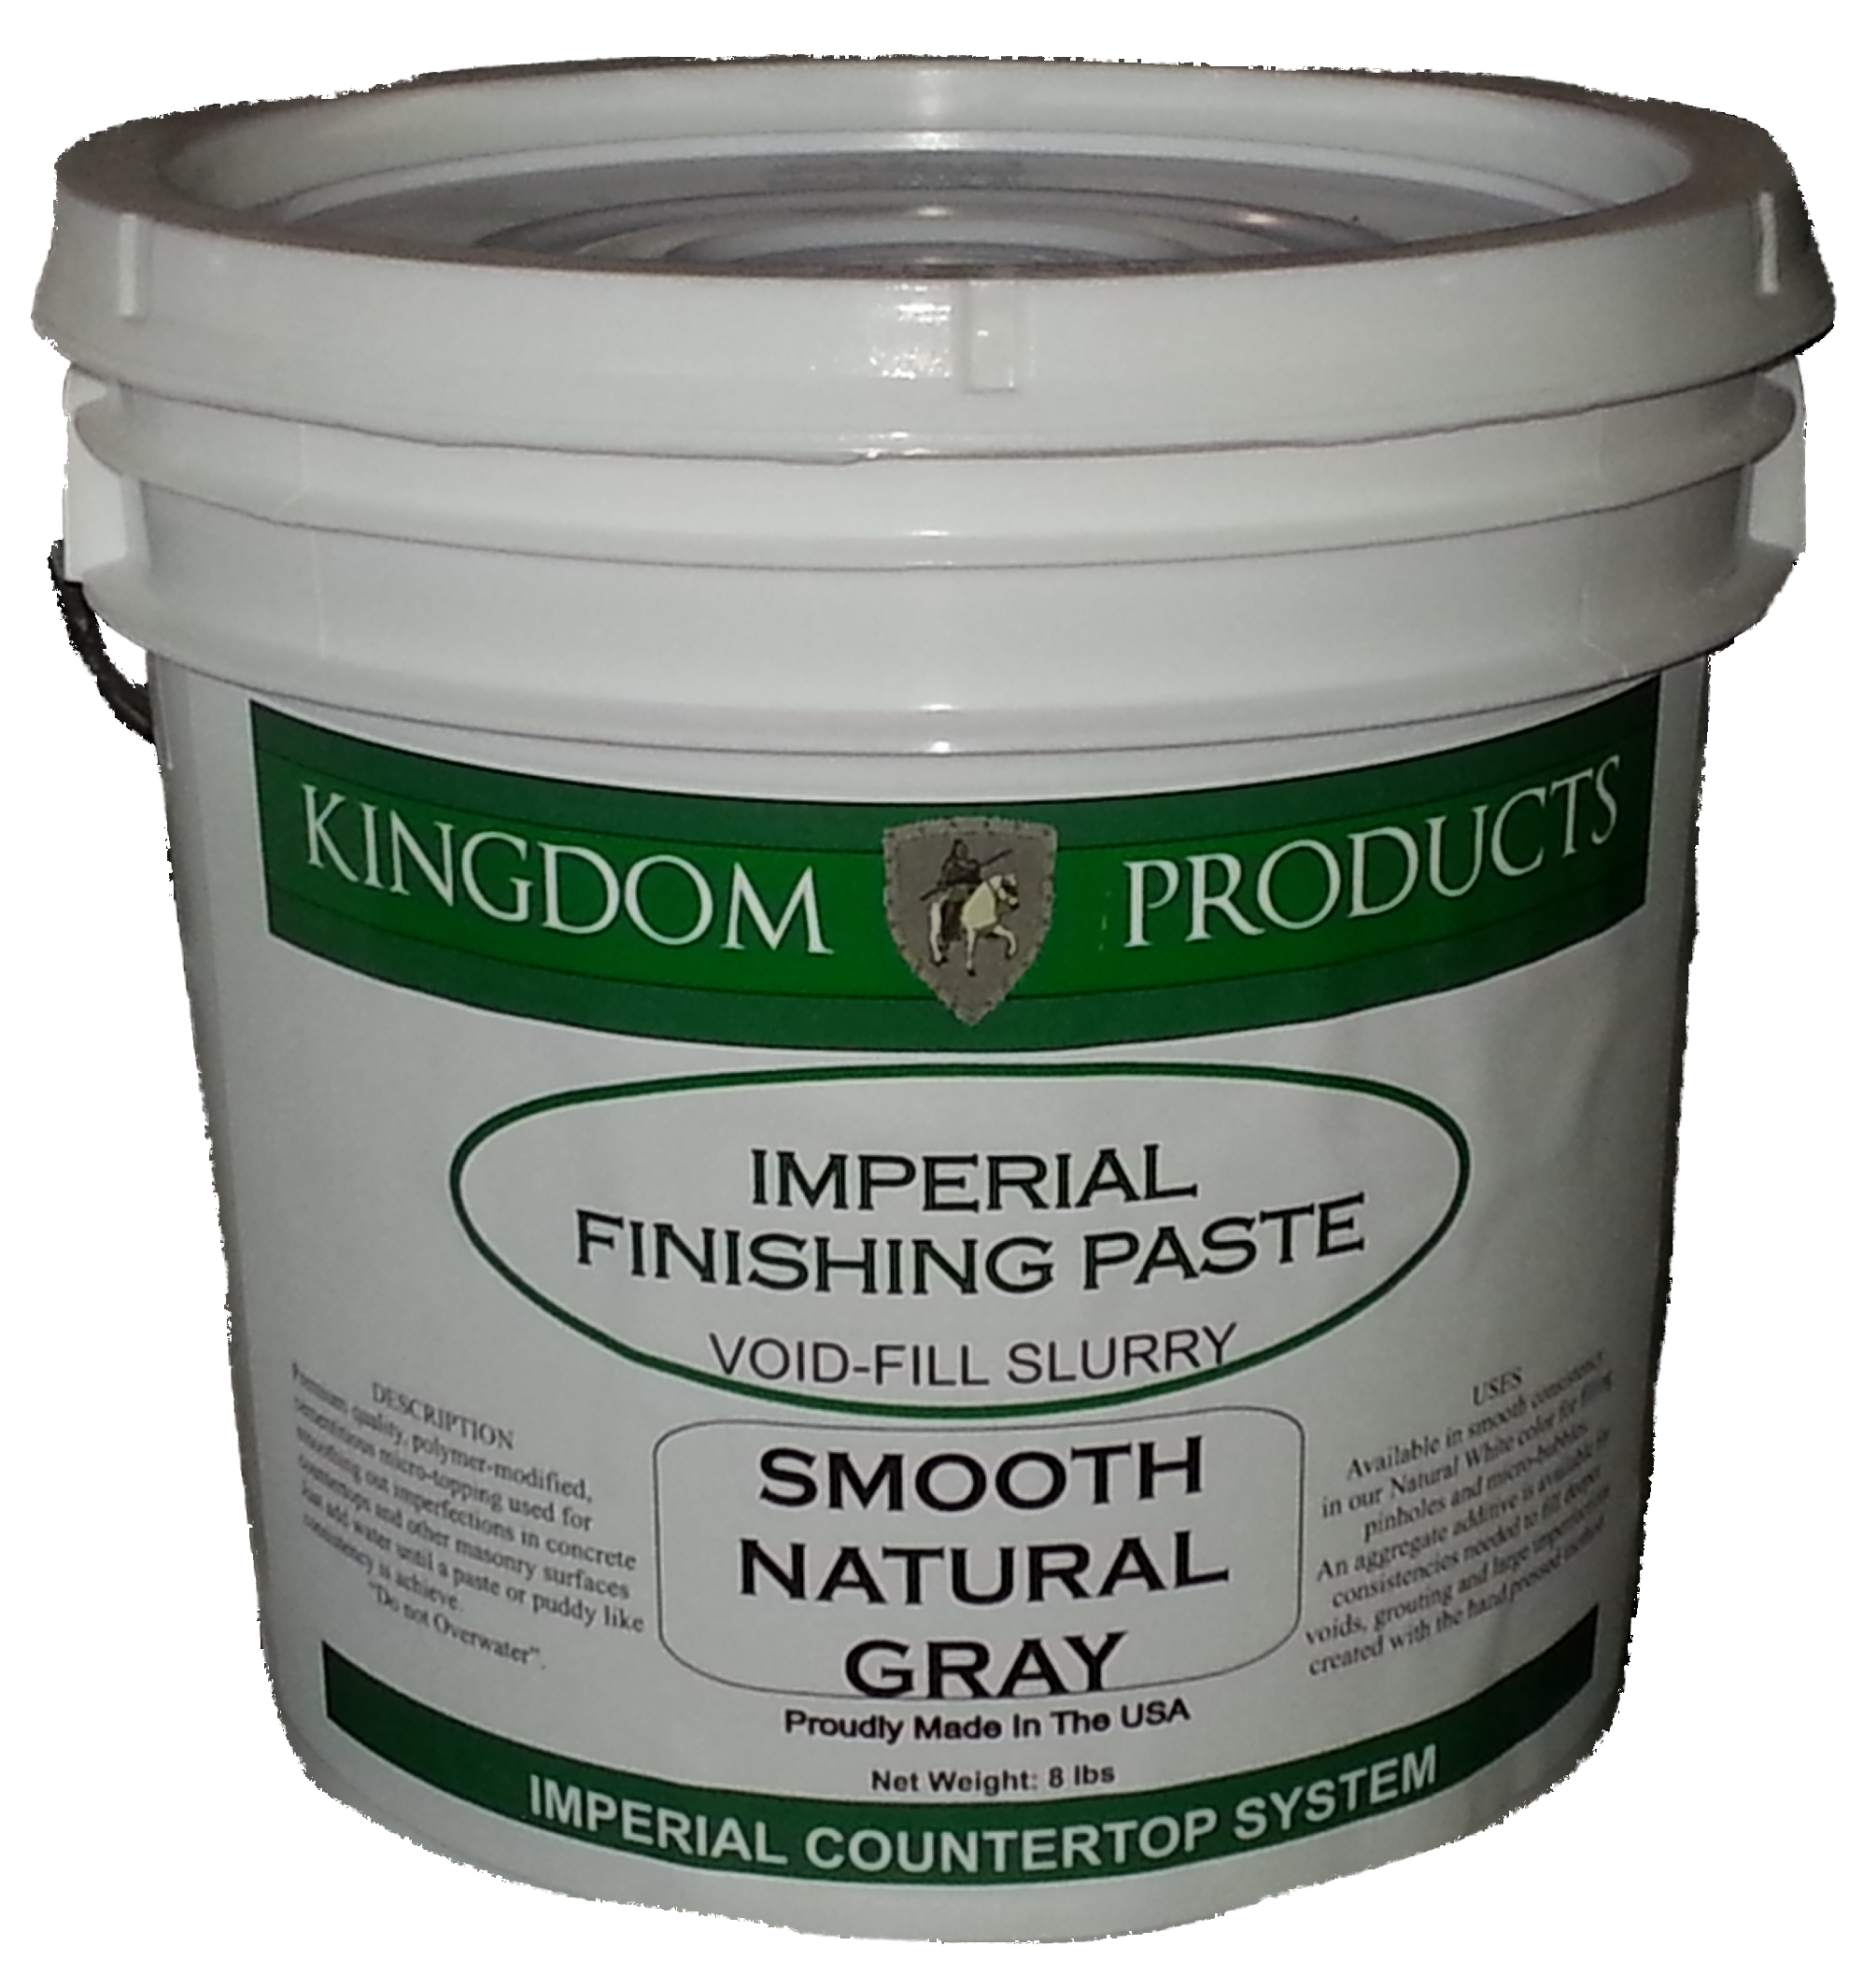 Imperial Finishing Paste